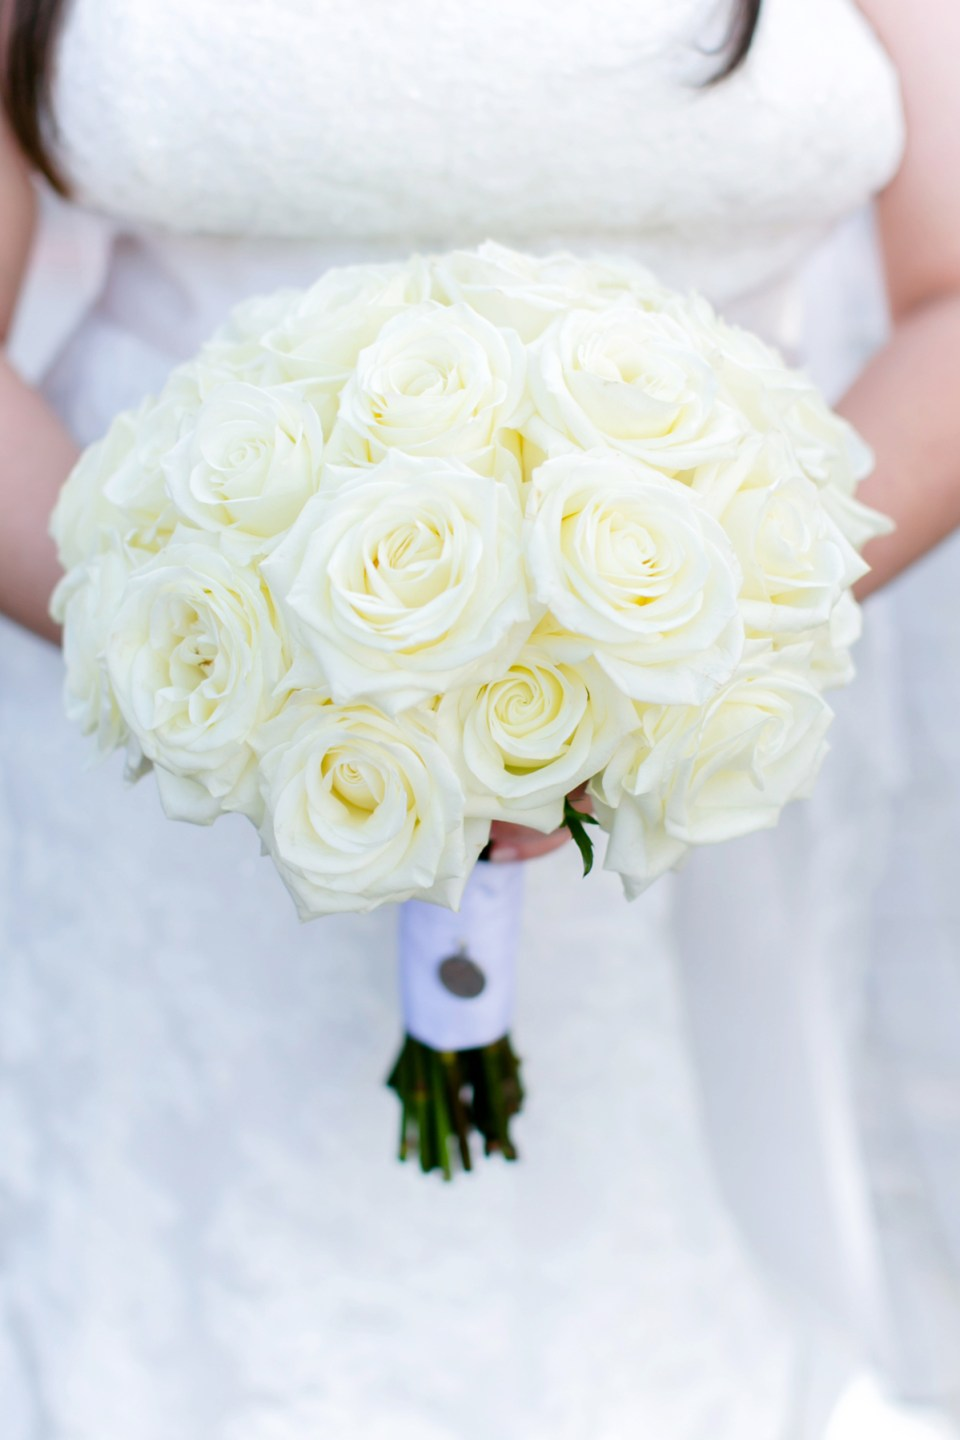 Wedding-Bouquet-Inspiration-Flowers-Bridal-Bridesmaids368